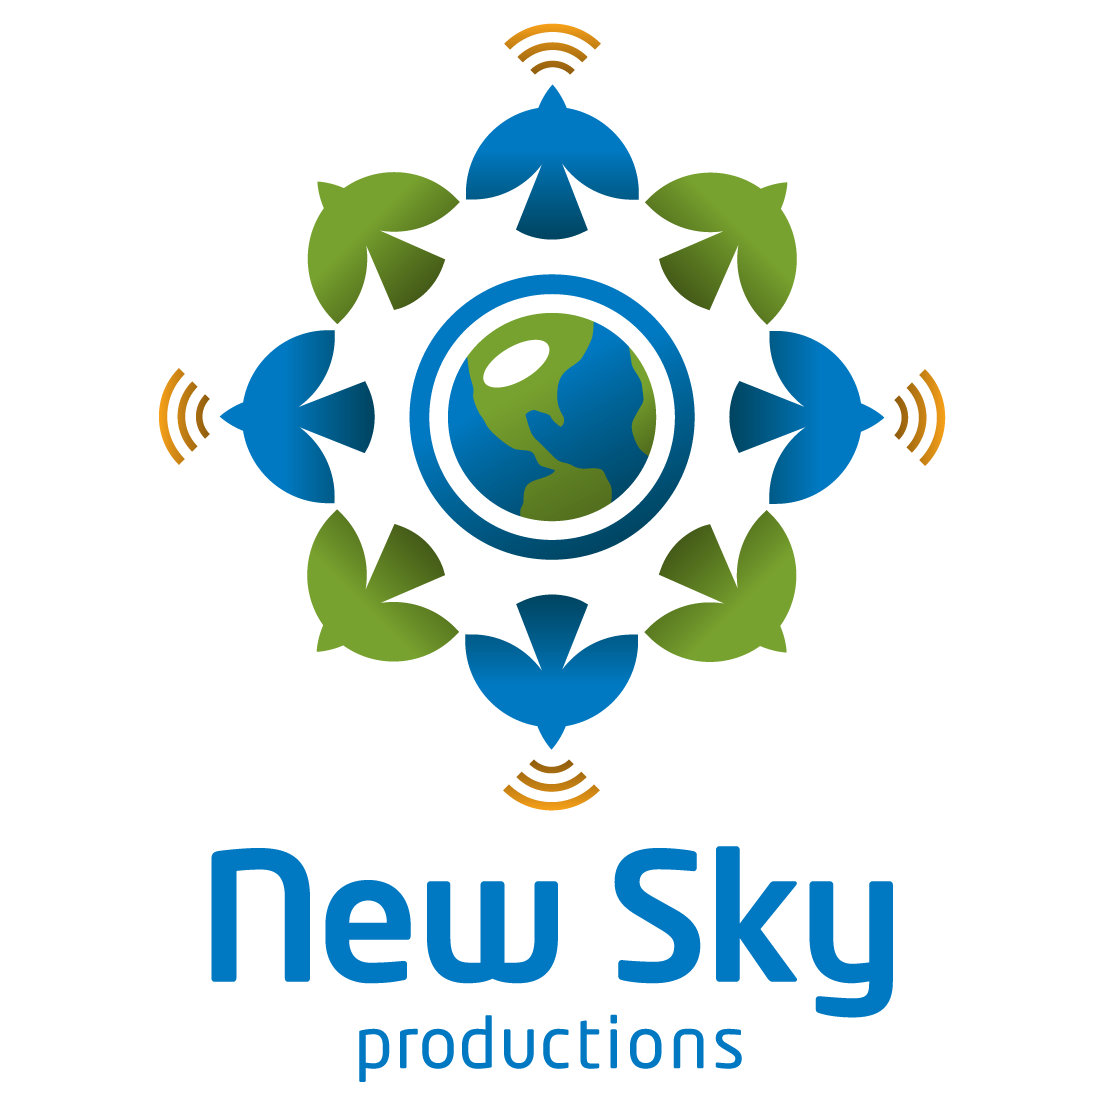 New-Sky-Productions-102413-square.png